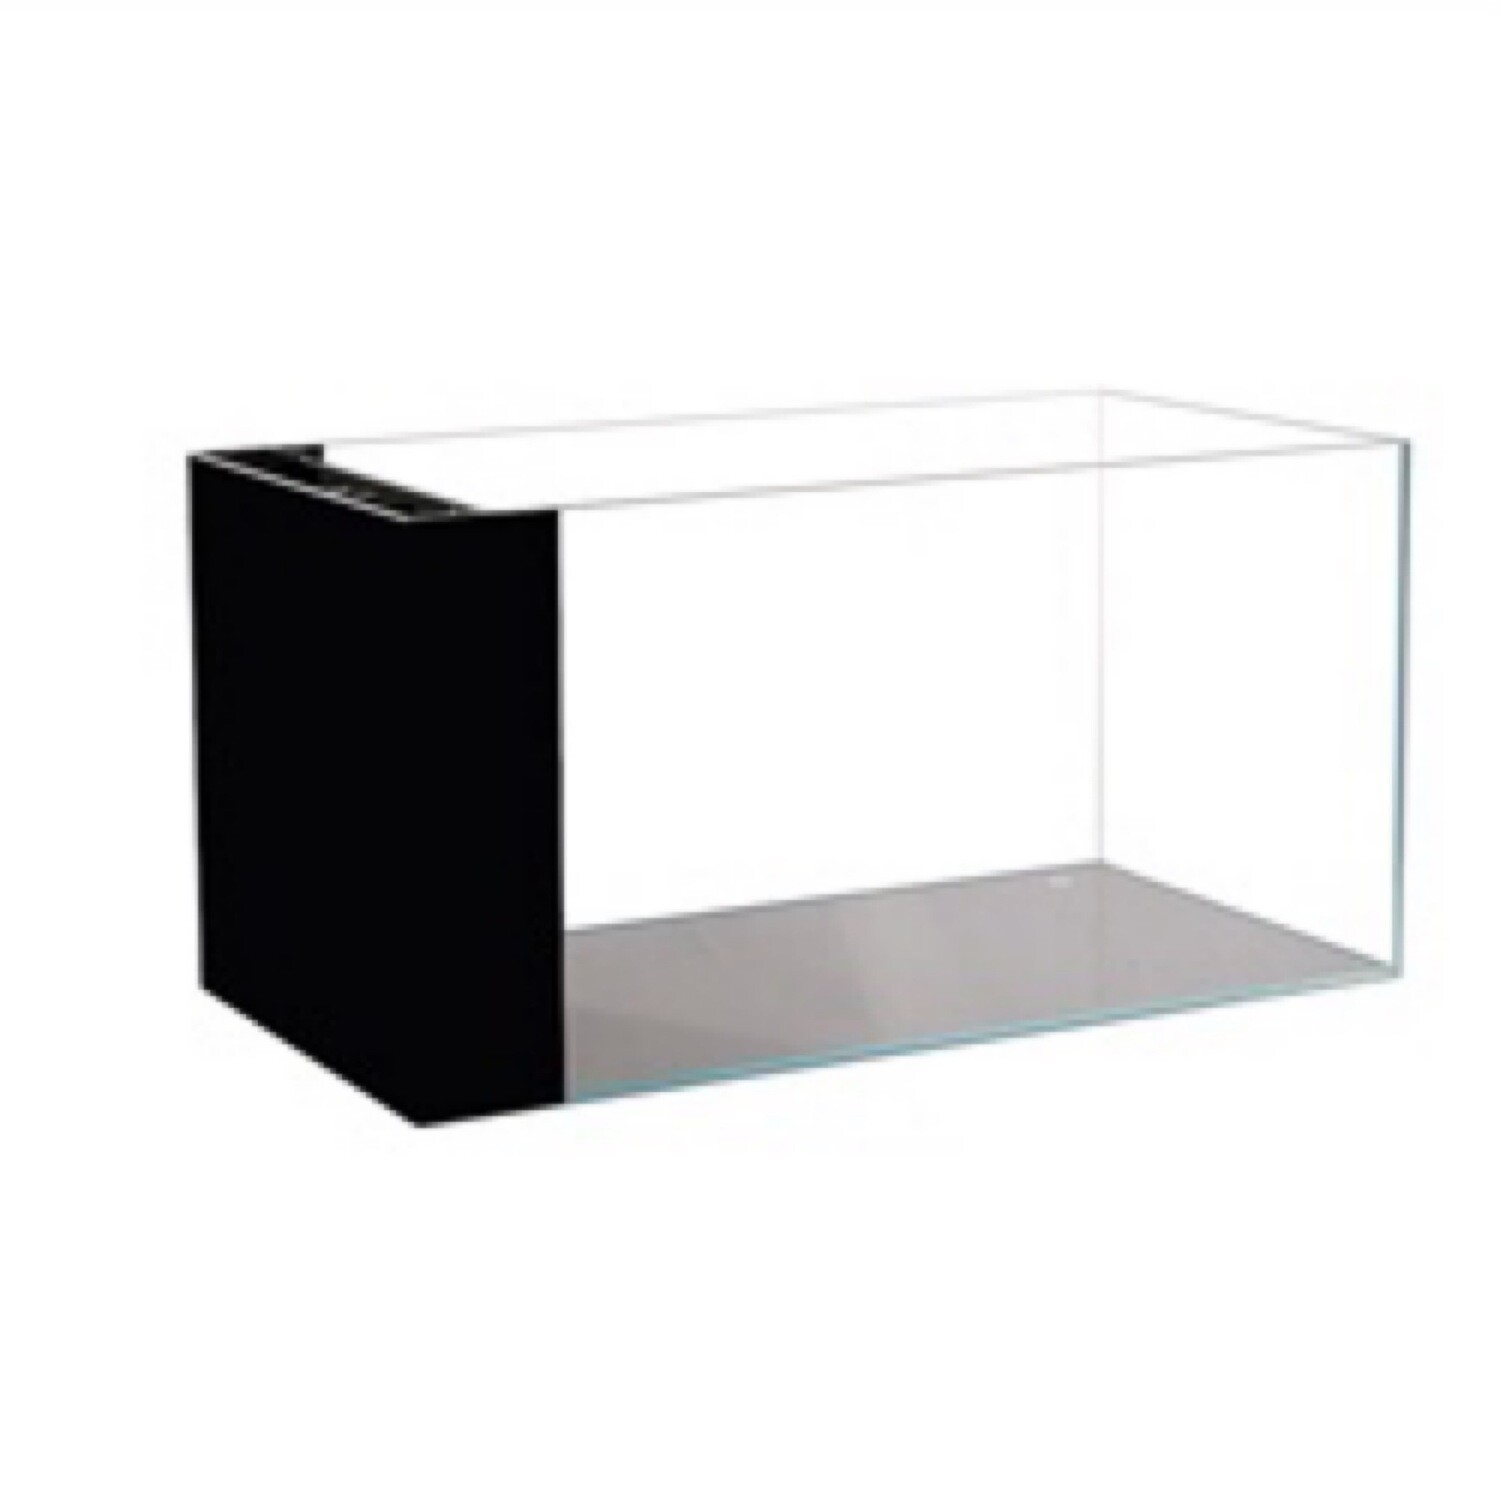 Lifegard Aquatics Crystal Aquarium AIO 3.8 gl